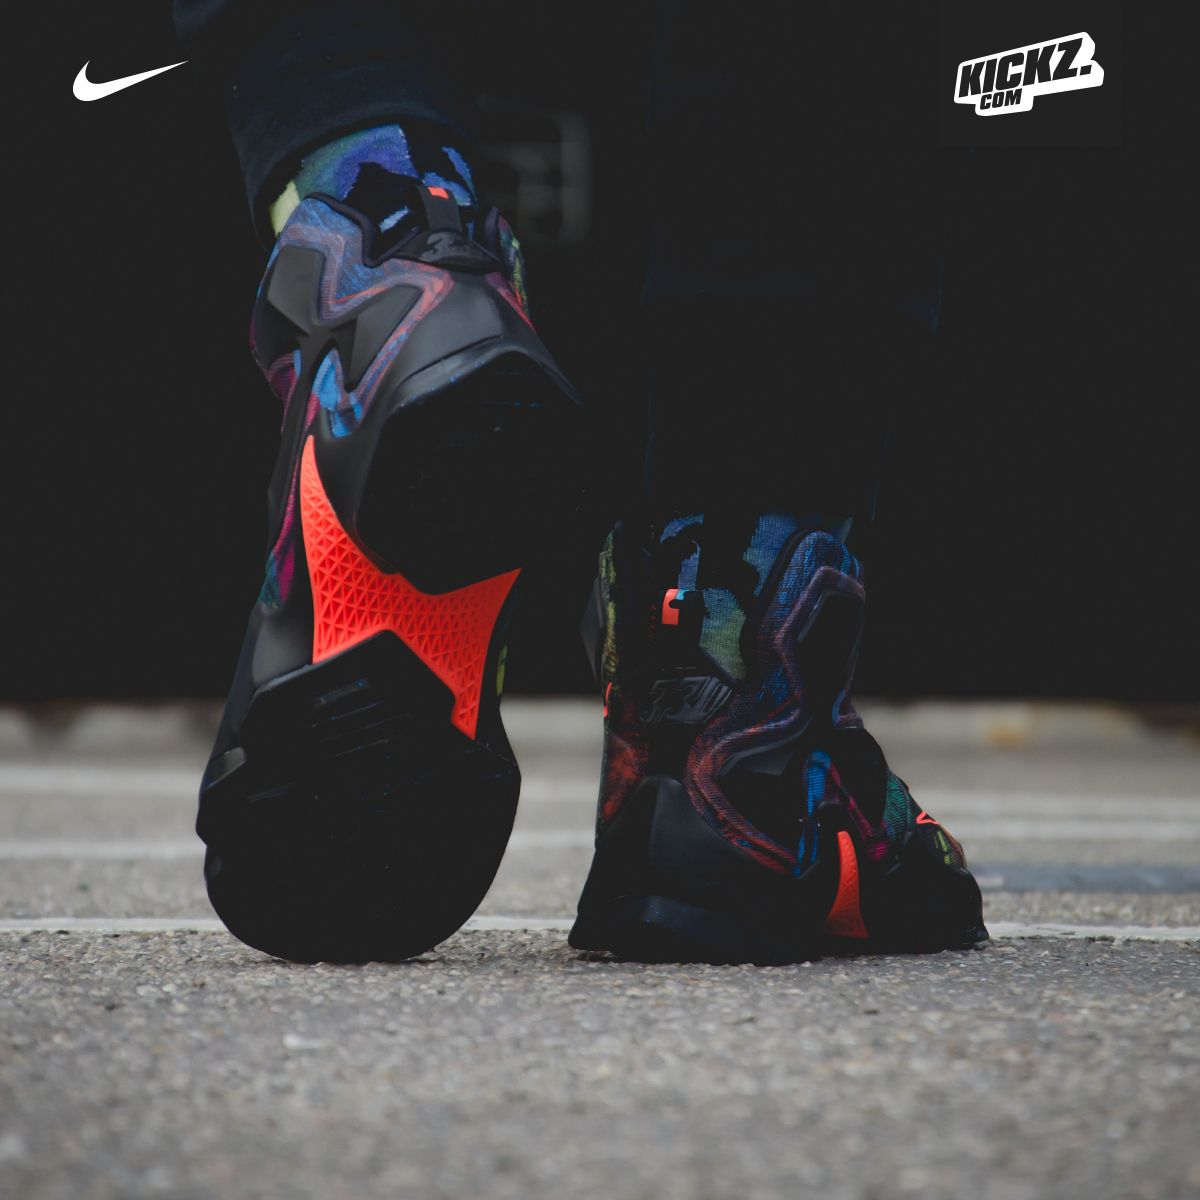 8db6632242c2 One of the best colorways on a LeBron James signature shoes so far  Nike  LeBron XIII